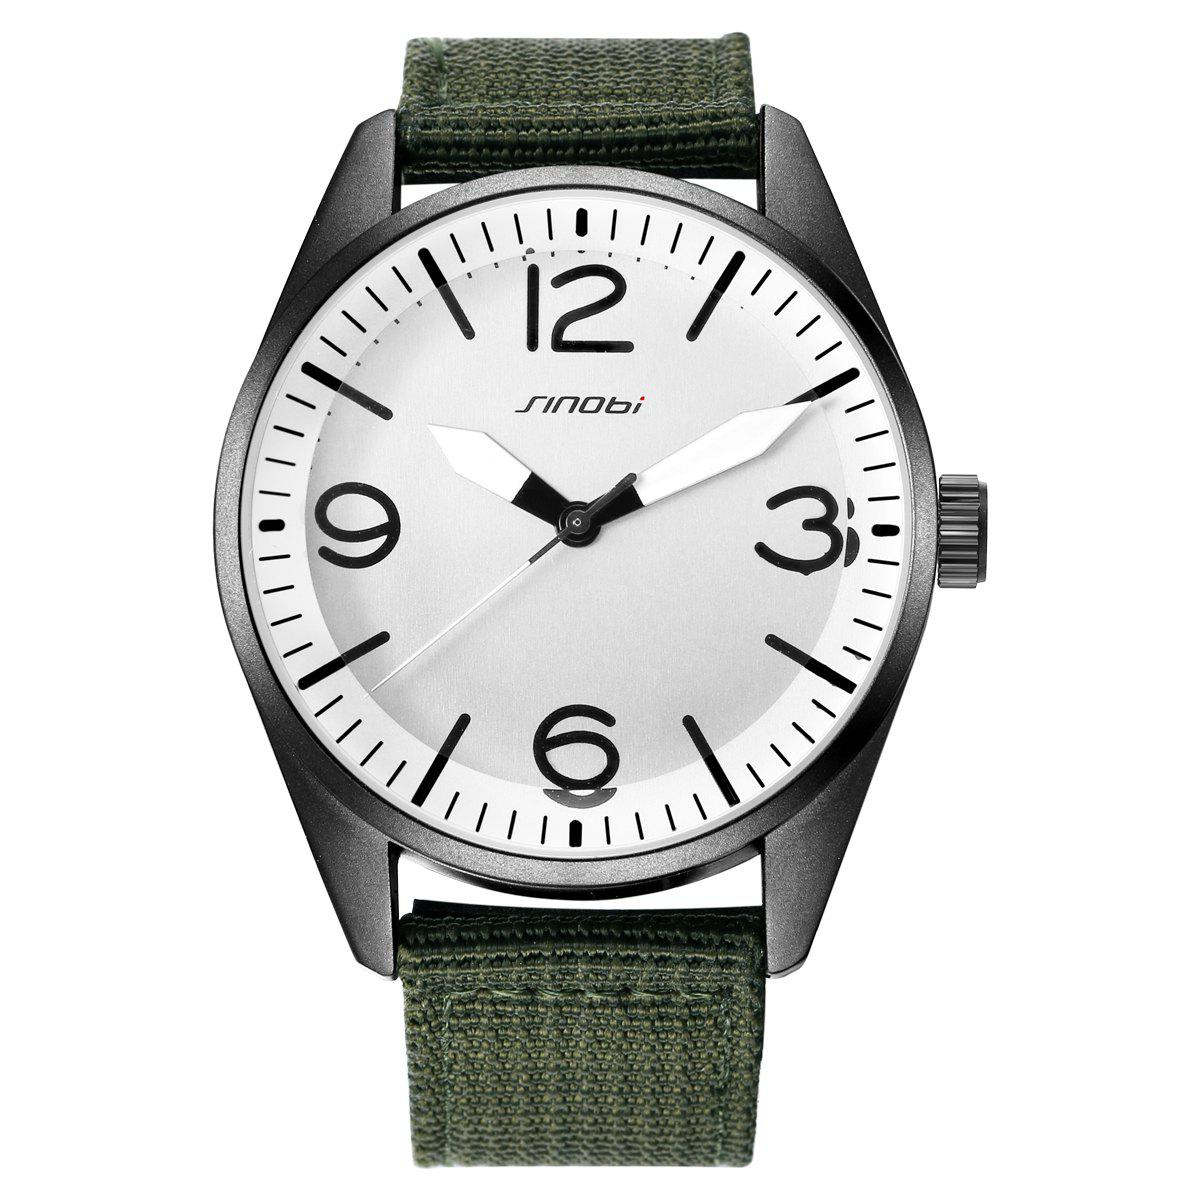 SINOBI Fashion Quartz Watch with Stereo Dial for Men, Green